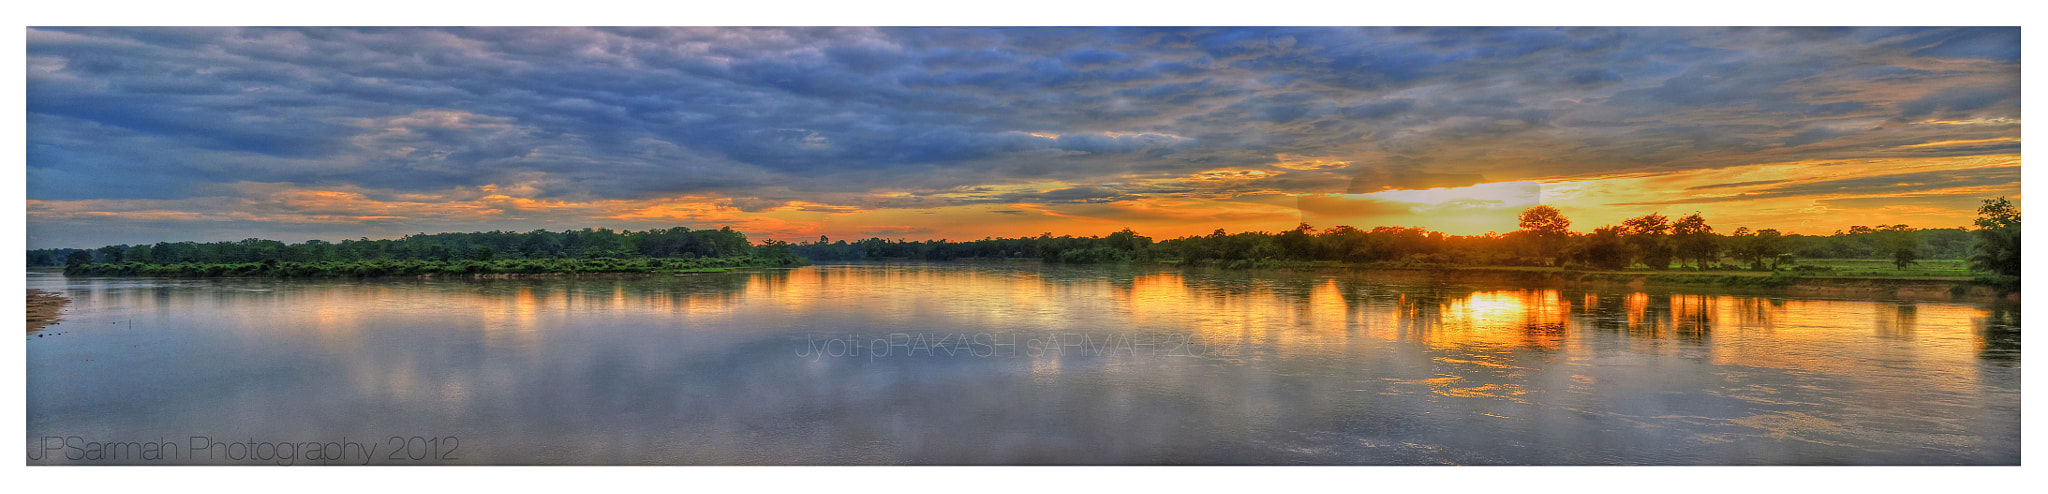 Photograph An evening by the Dihing Side. by Jyoti Prakash Sarmah on 500px